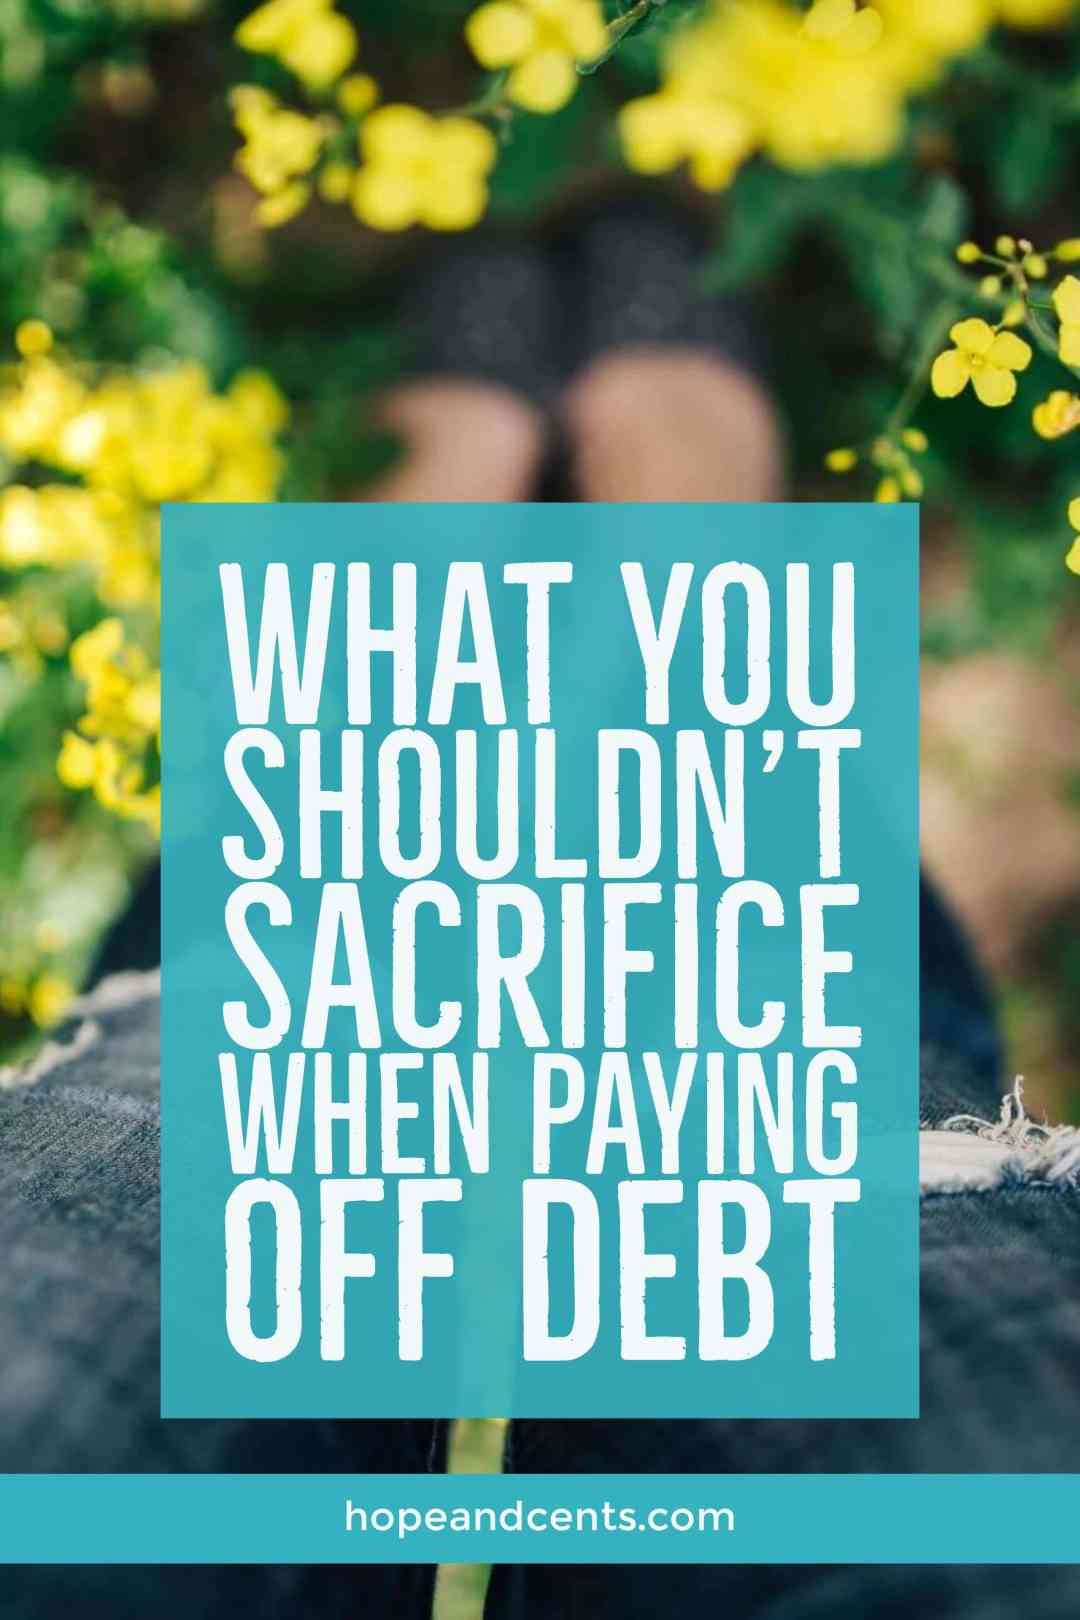 Are you paying off debt? You're probably doing all you can to bring in additional income and cut back on your spending. But it's possible you may be sacrificing some things you'll later regret. #debt #personalfinance #money #moneytips